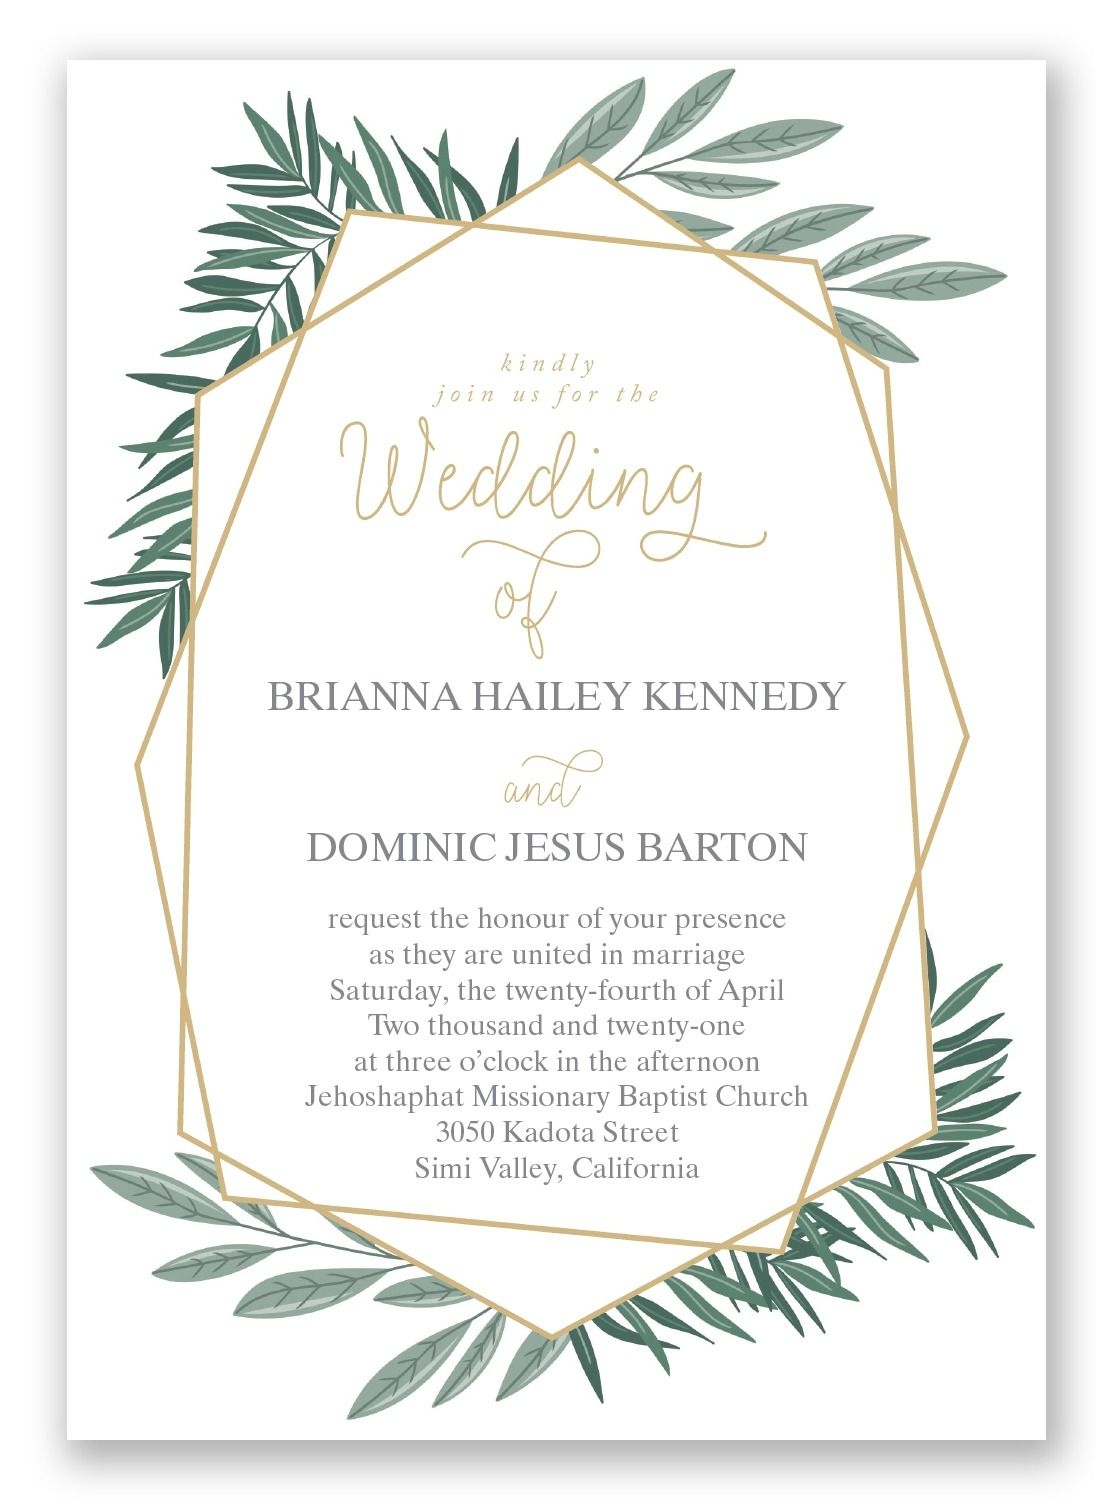 Opulent Lines Wedding Invitation By Invitations By David S Bridal